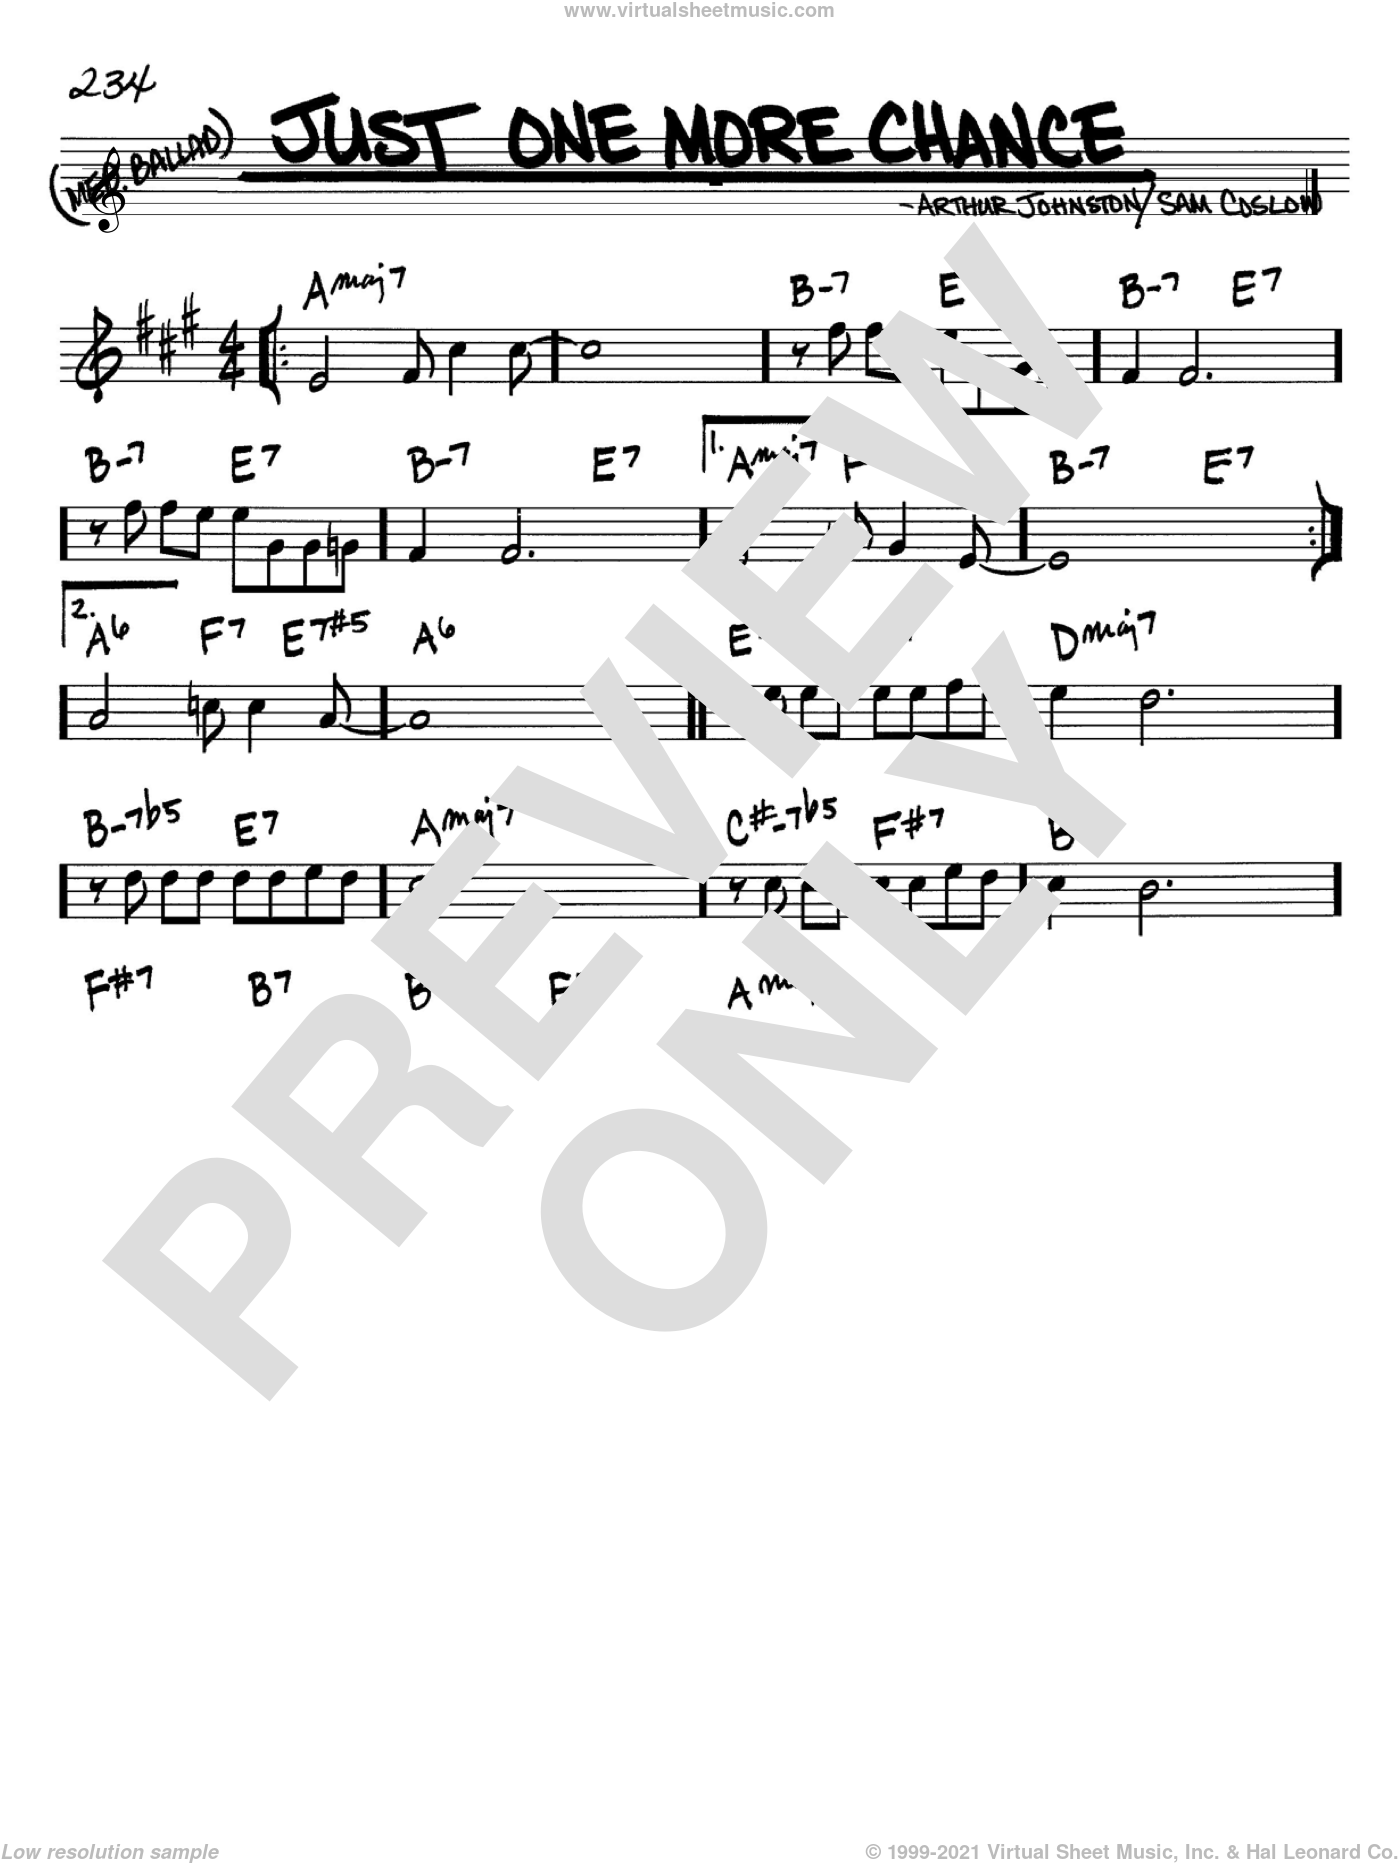 Just One More Chance sheet music for voice and other instruments (in Bb) by Bing Crosby, Arthur Johnston and Sam Coslow, intermediate skill level